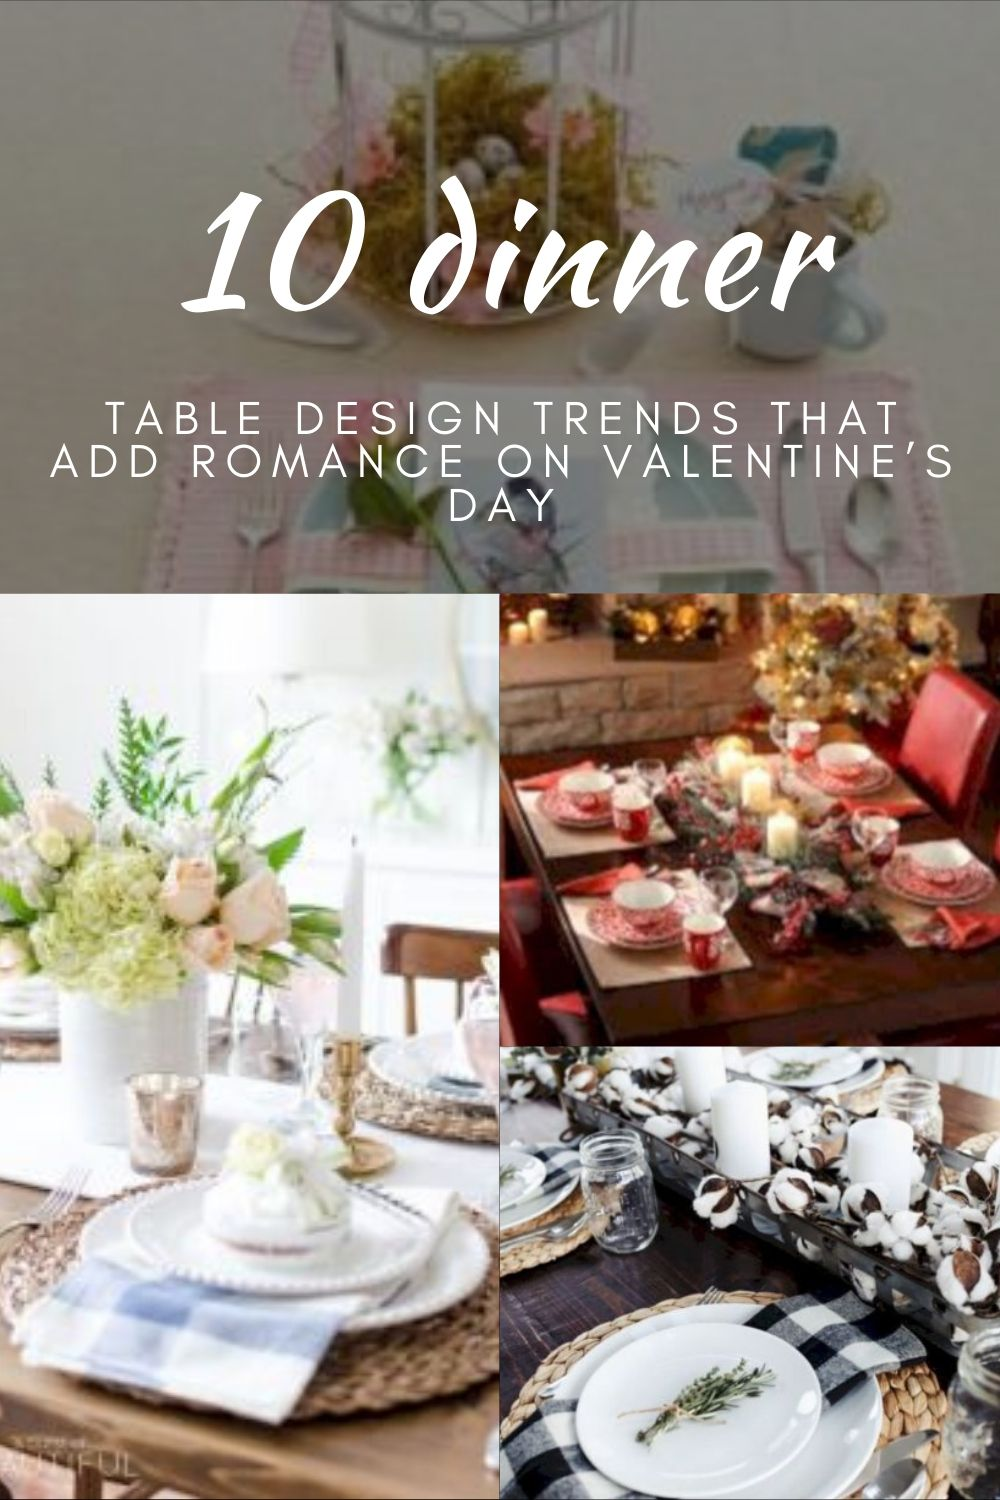 Table Design Trends That add Romance on Valentine's Day